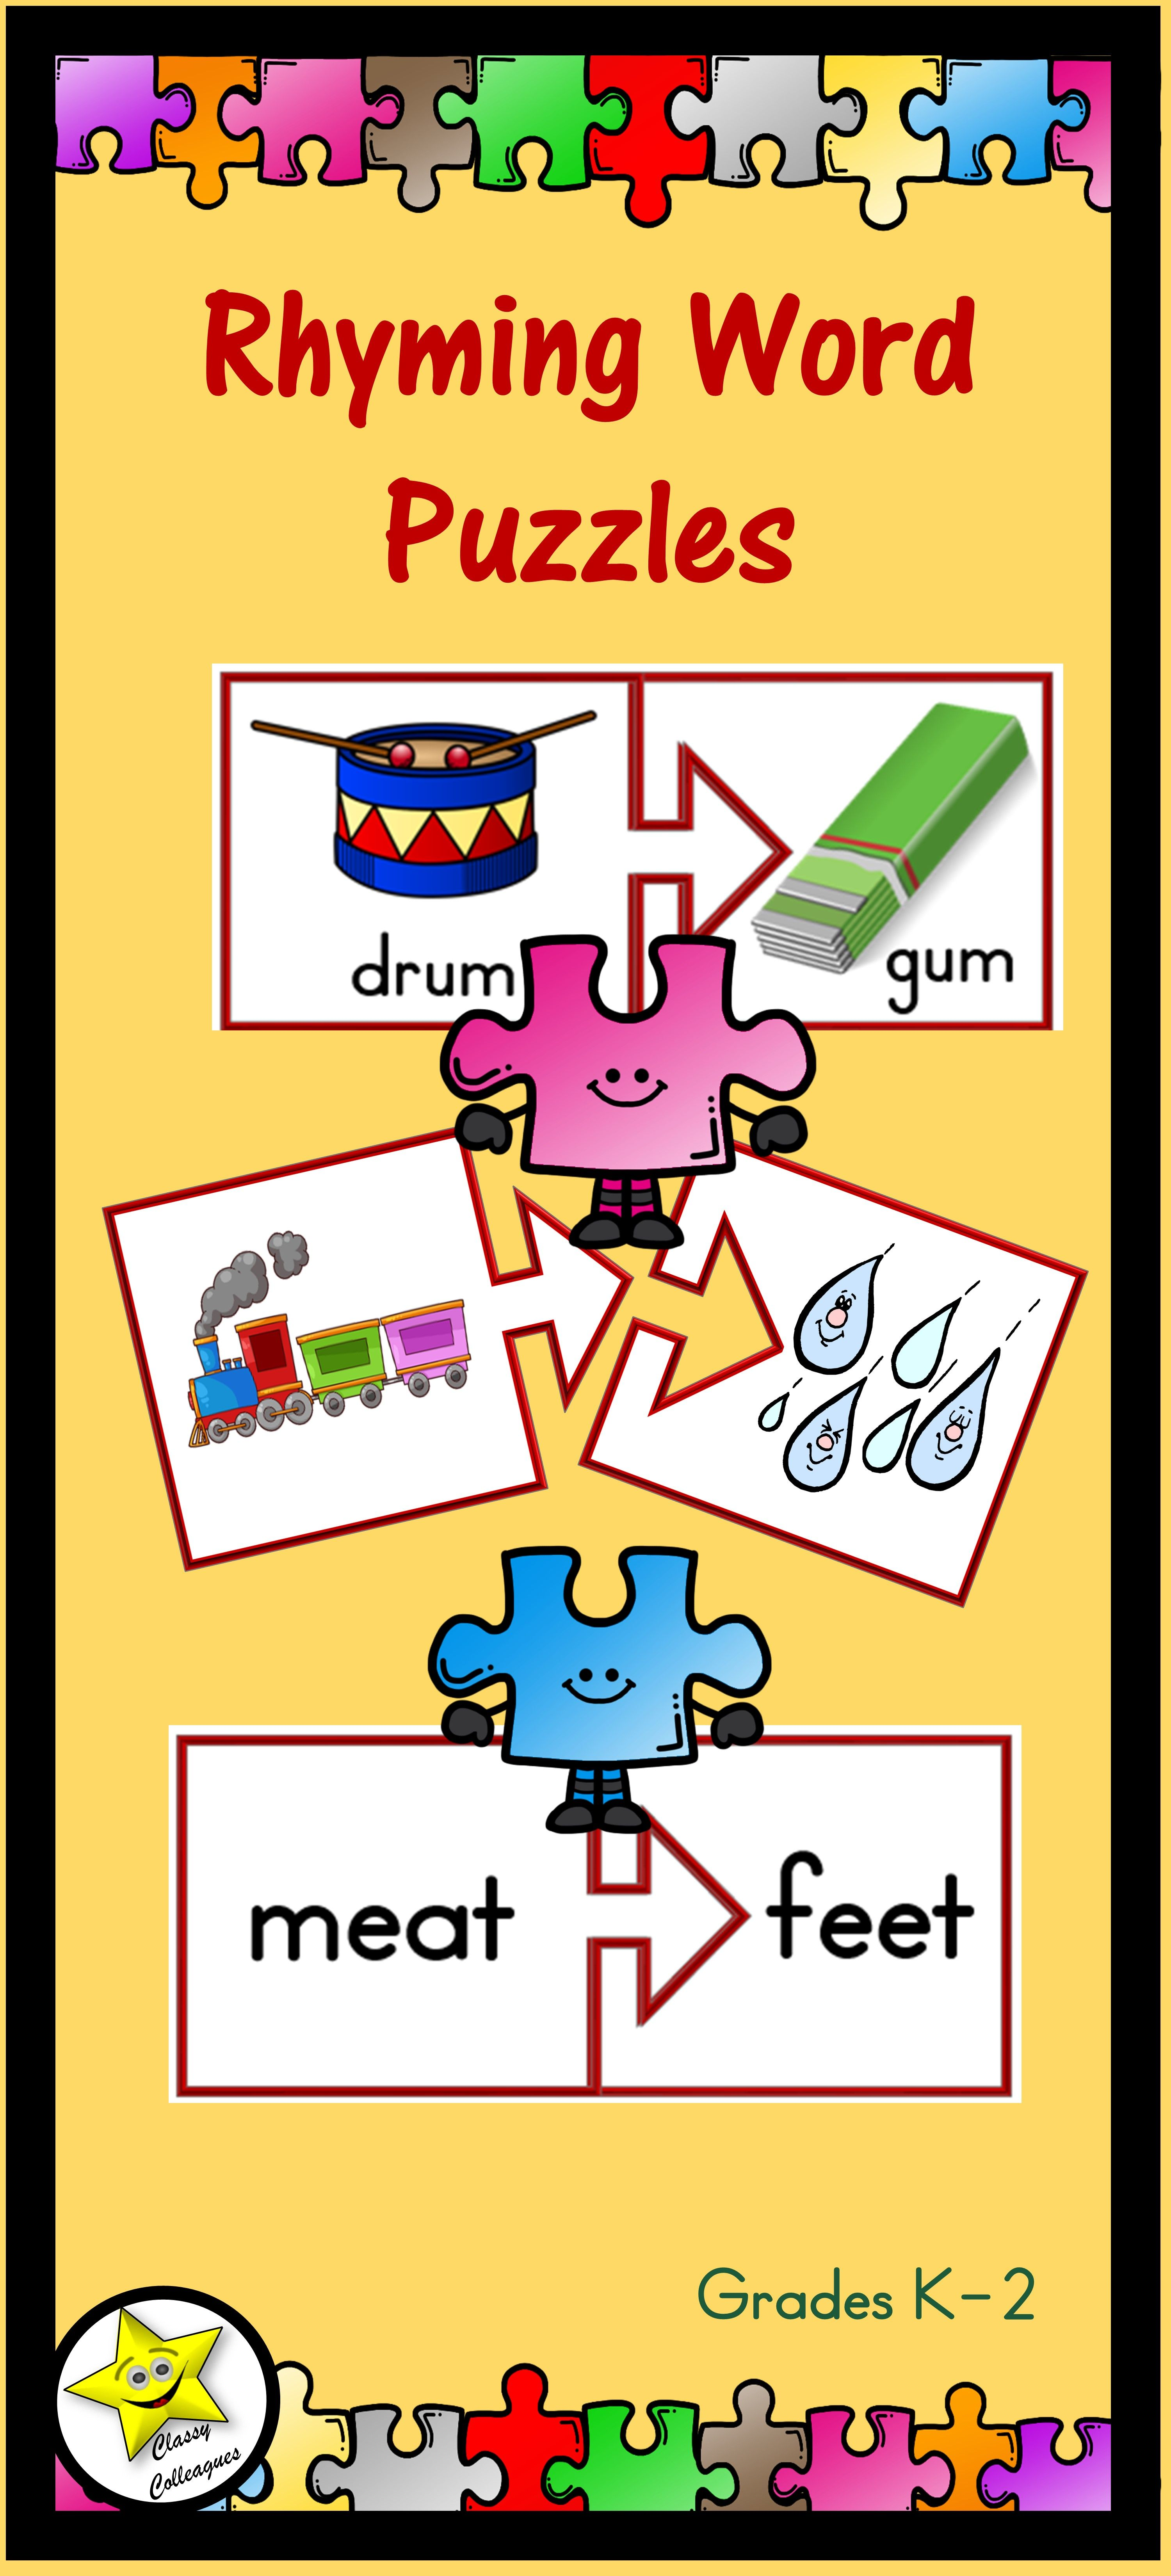 Rhyming Word Puzzles With Images